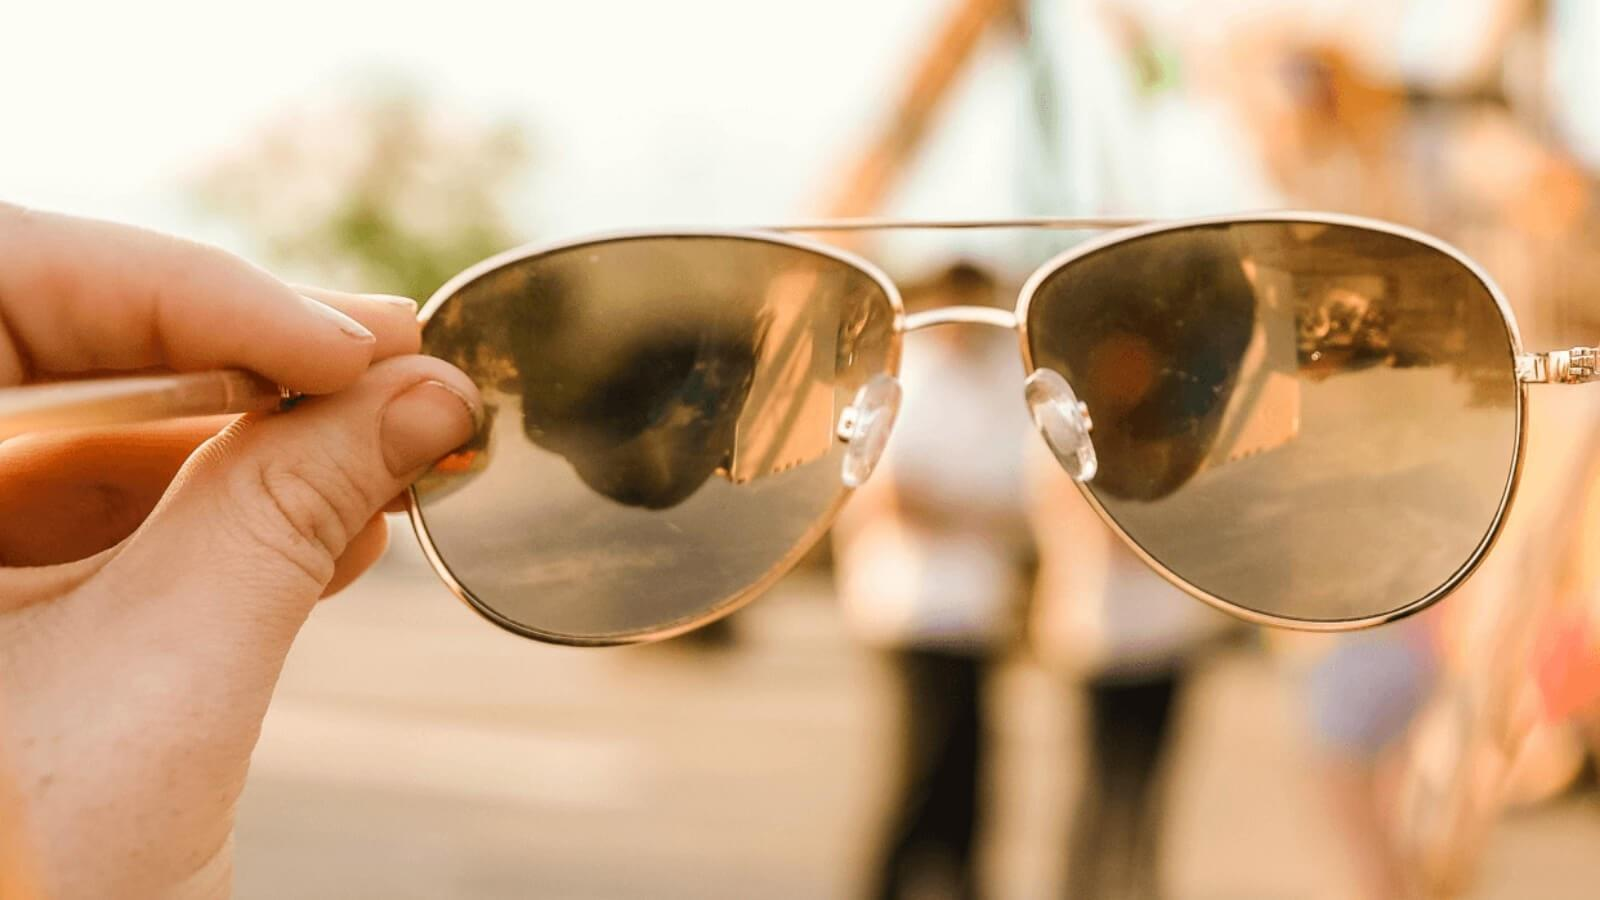 How easy is buying Prescription sunglasses online?